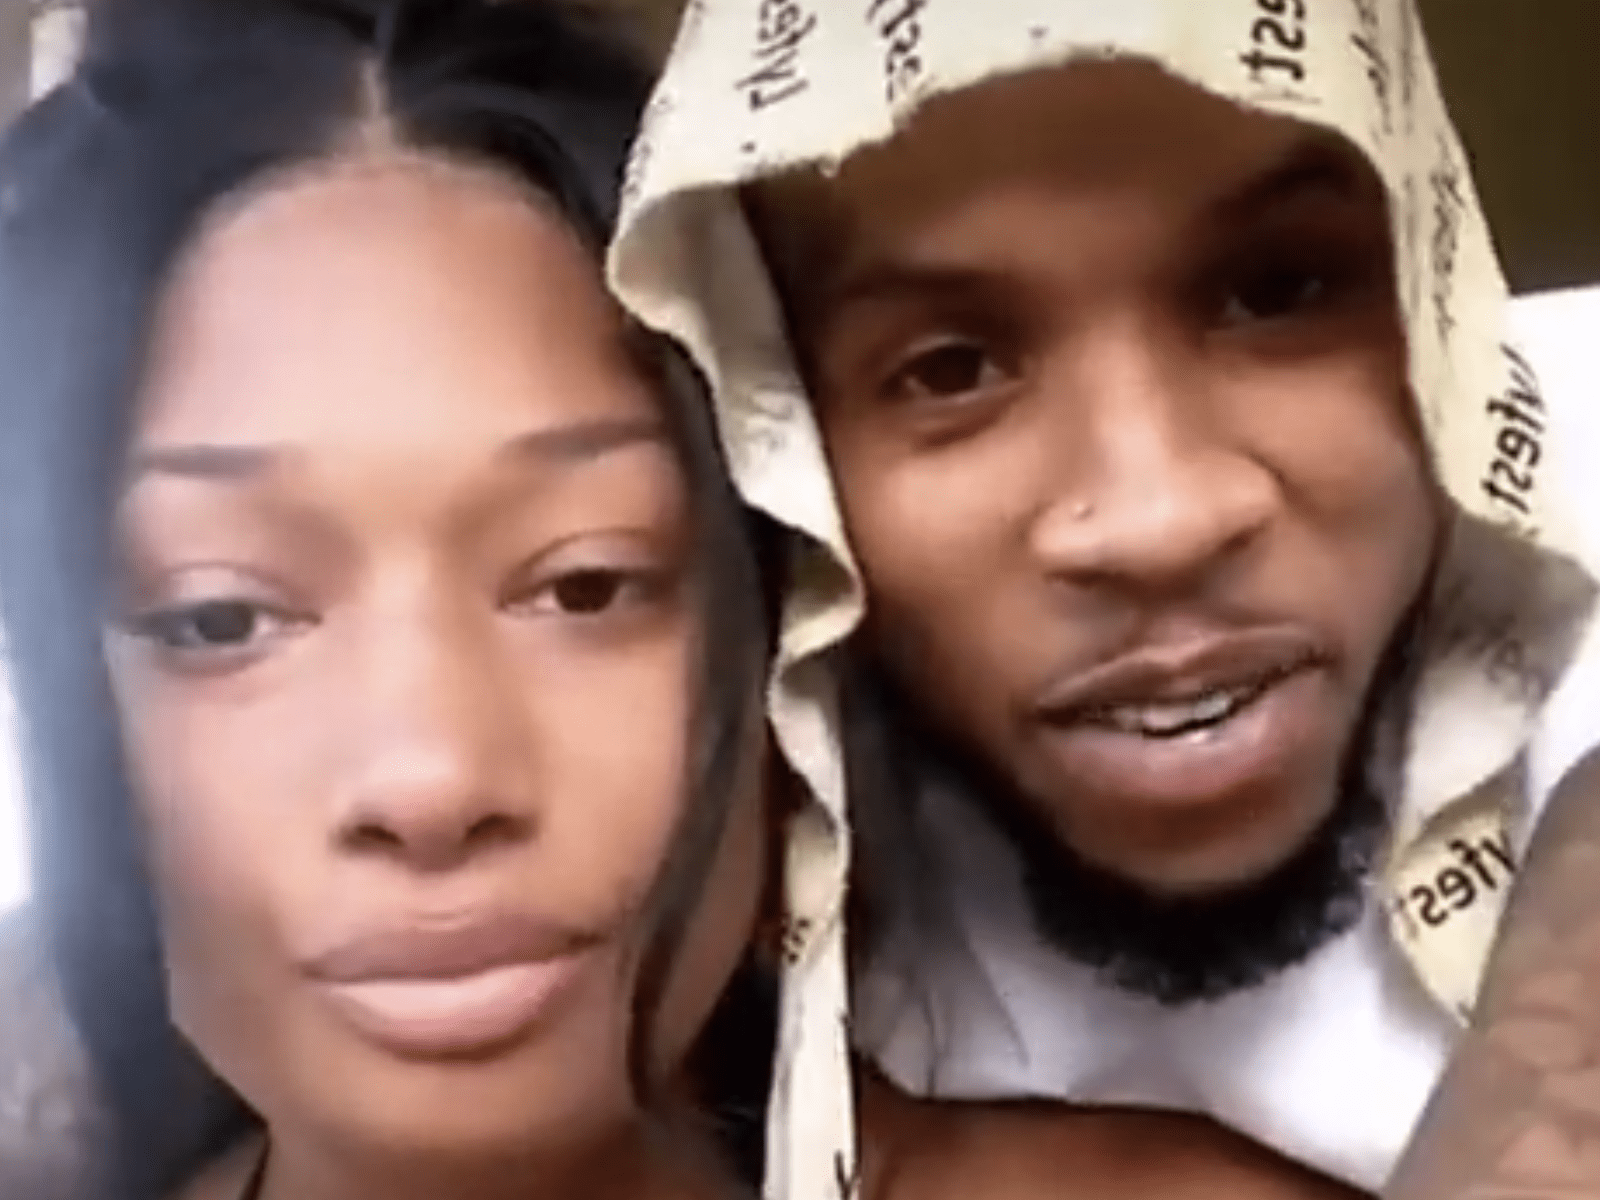 Megan Thee Stallion Advocates for Women and Denies Relationship With Tory Lanez in NYT Op-Ed Piece